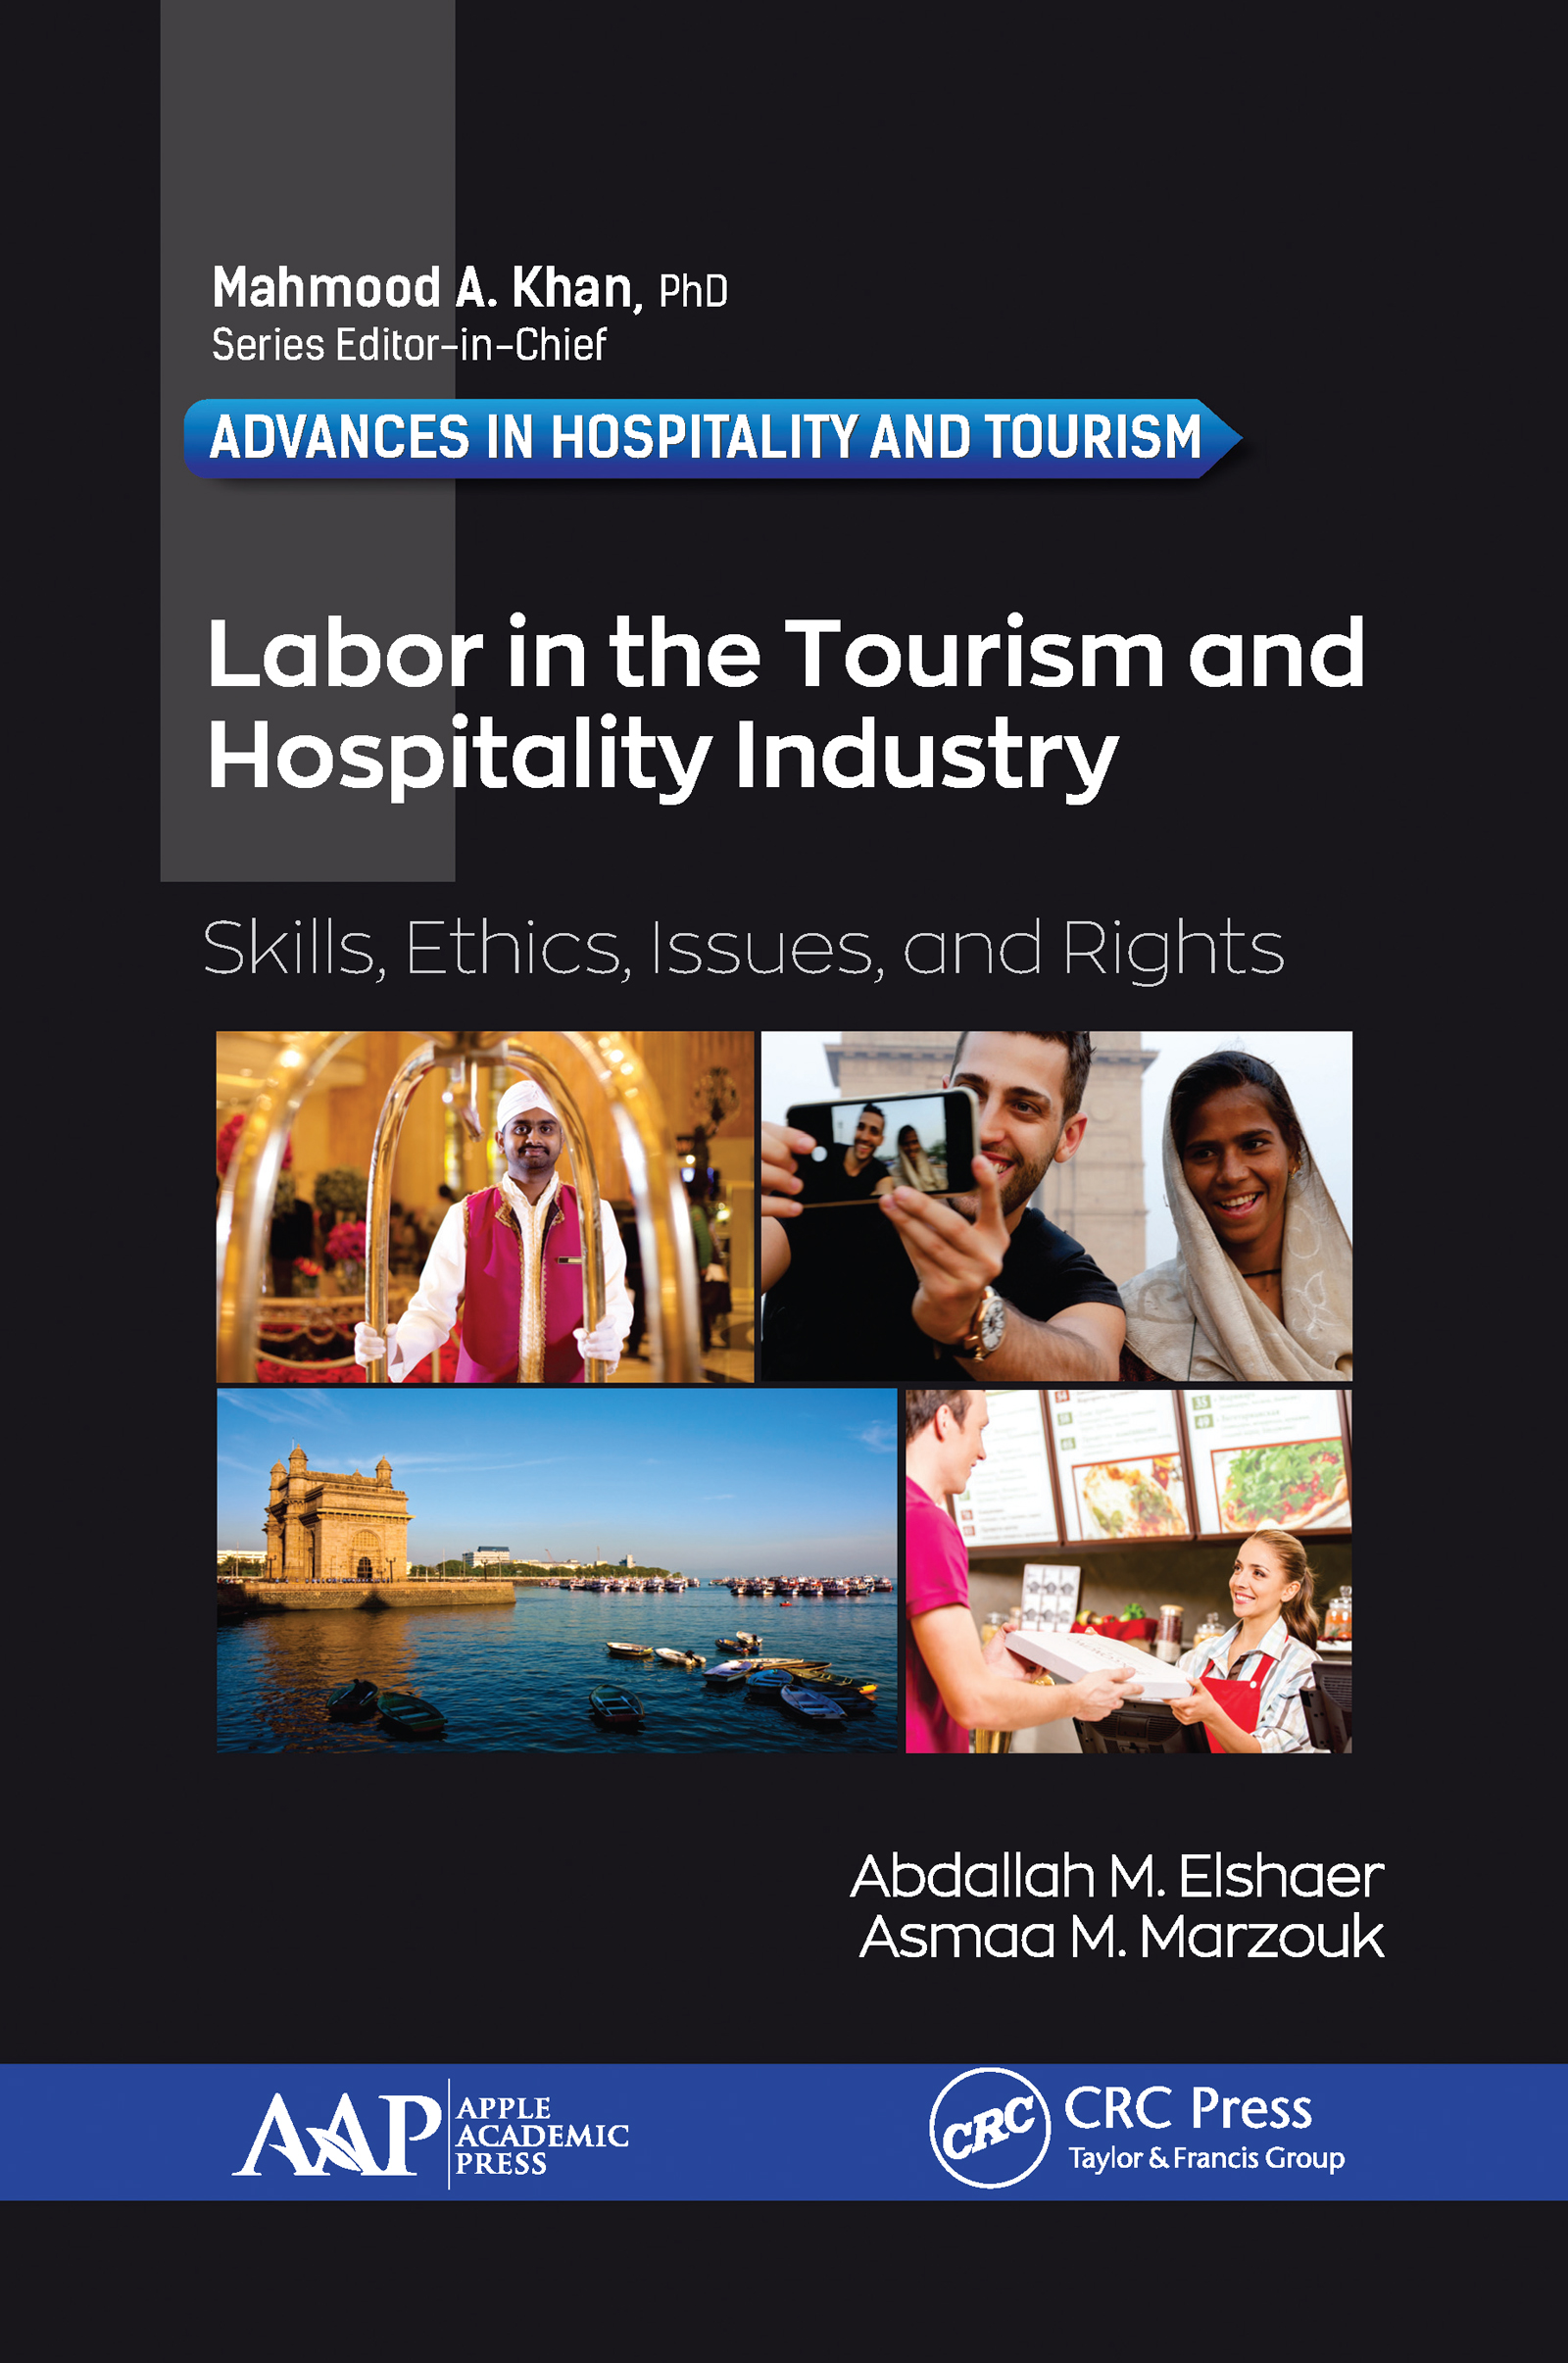 Labor in the Tourism and Hospitality Industry